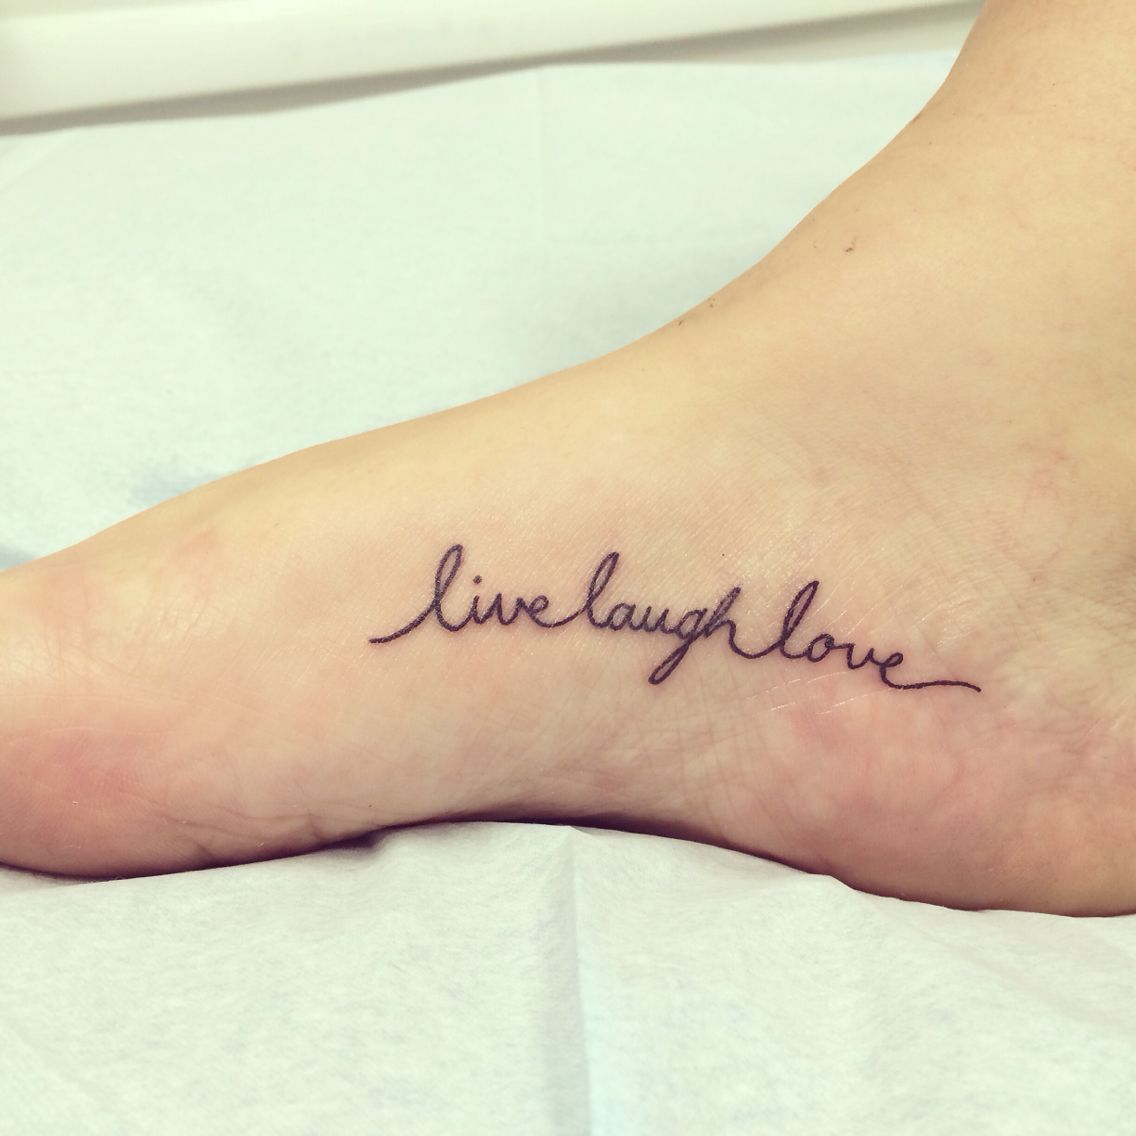 Live Laugh Love Tattoo My Newest Tattoo I Love It And What It Stands For New Tattoos Inspirational Tattoos Foot Tattoo Quotes